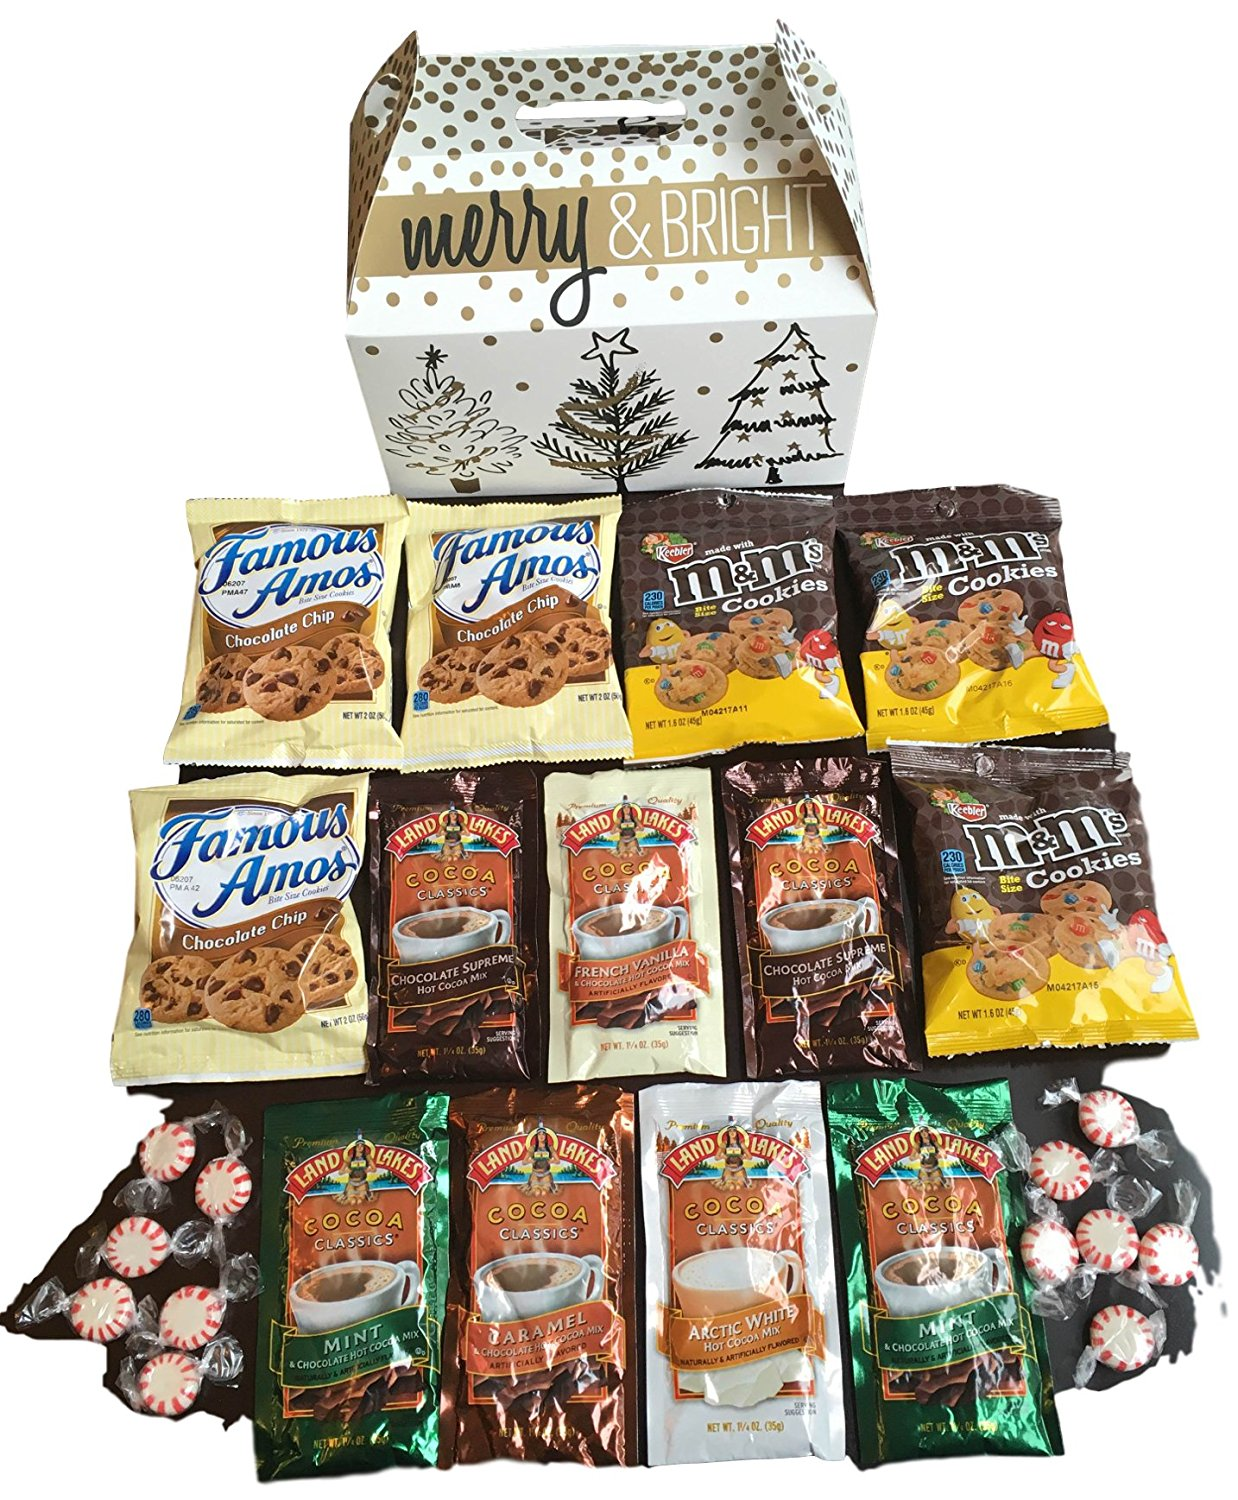 Hot Cocoa & Cookies Holiday Care Package: $21.95 on Amazon